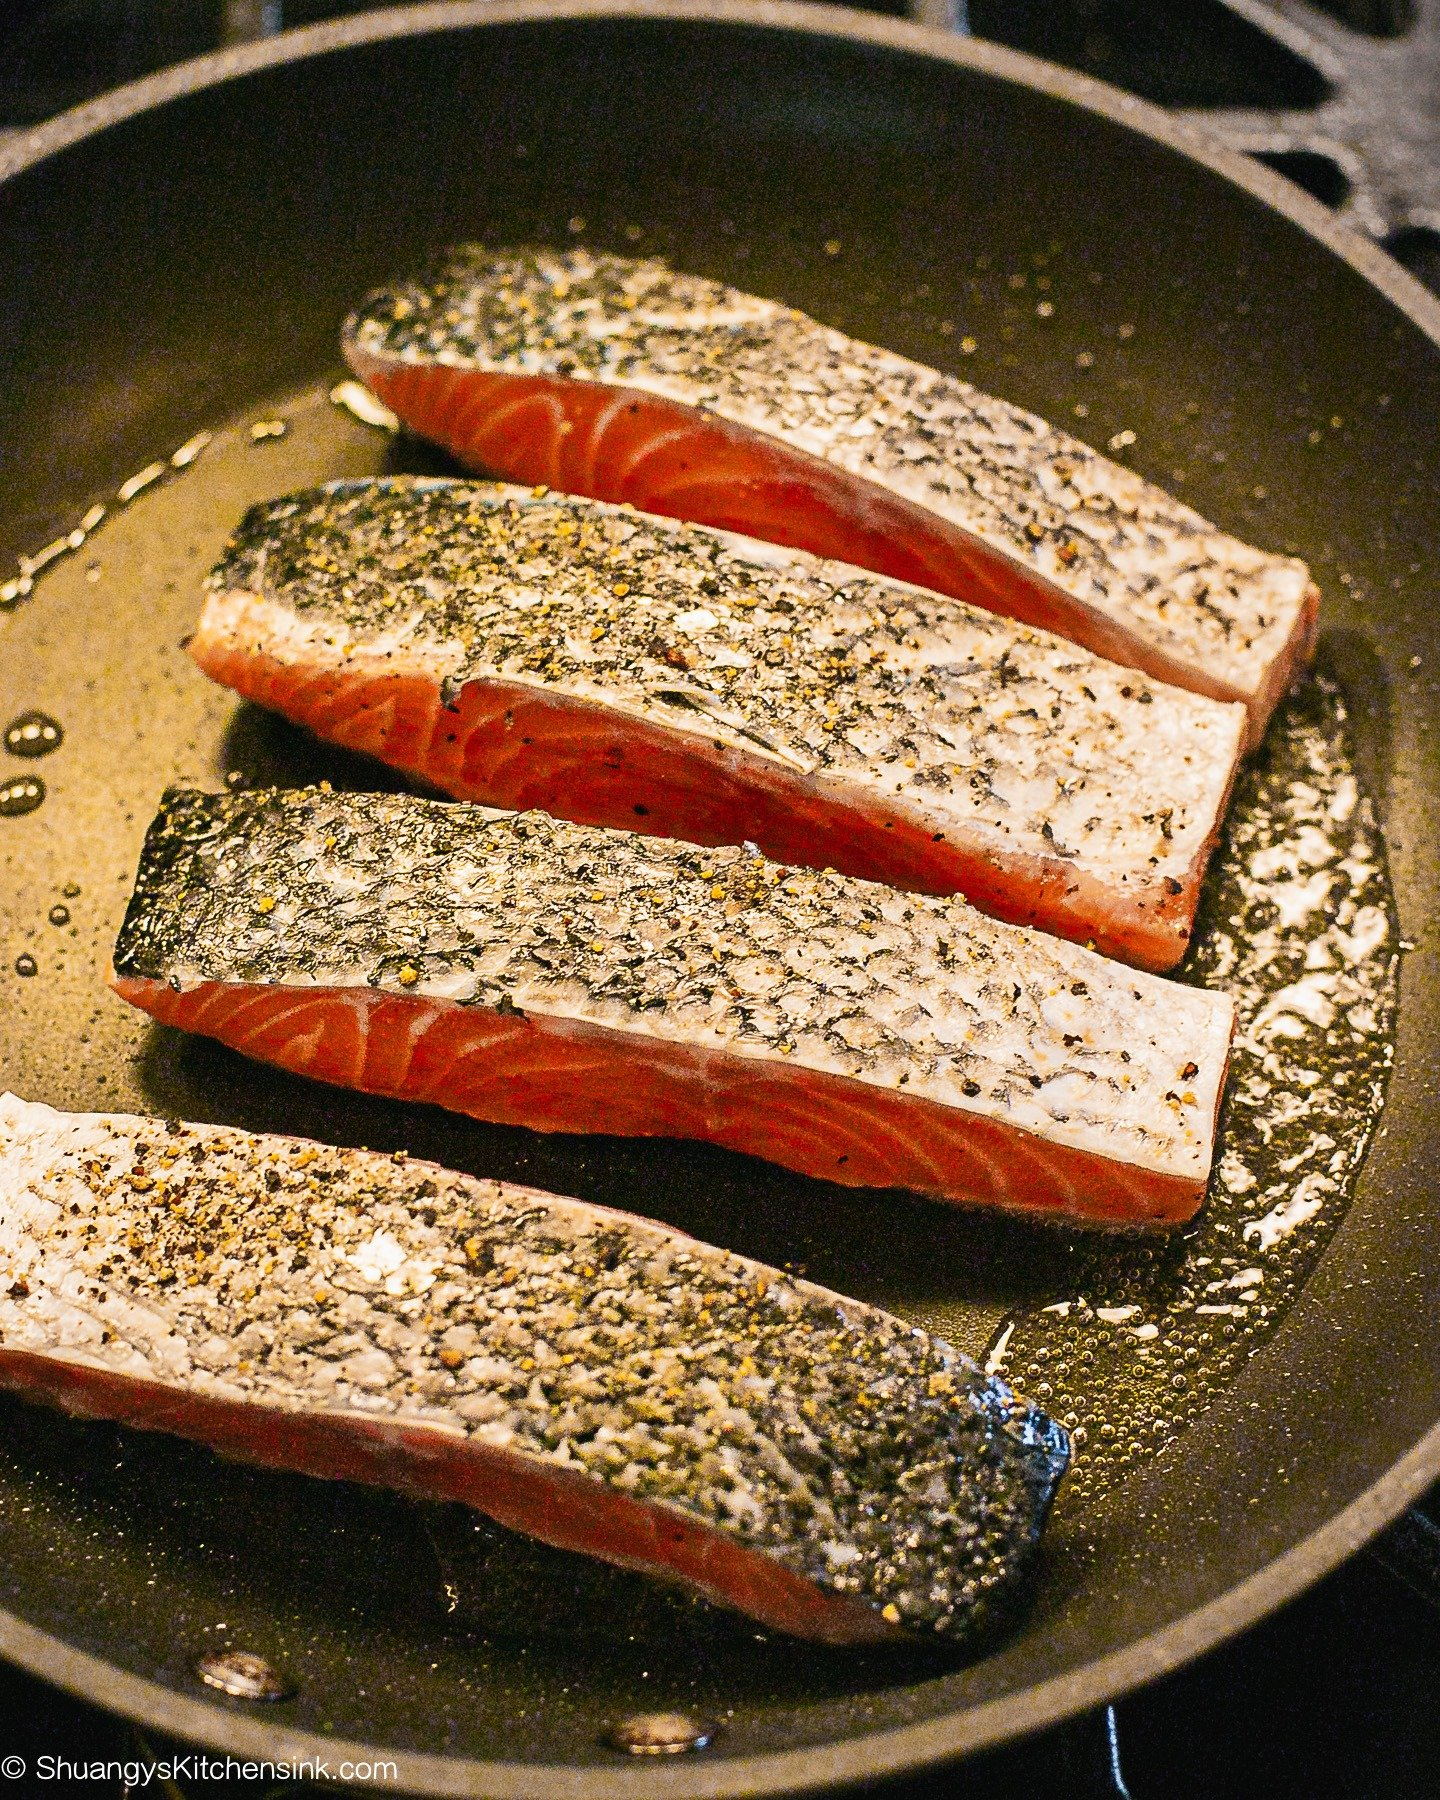 4 salmon fillets being seared in hot oil in a pan.